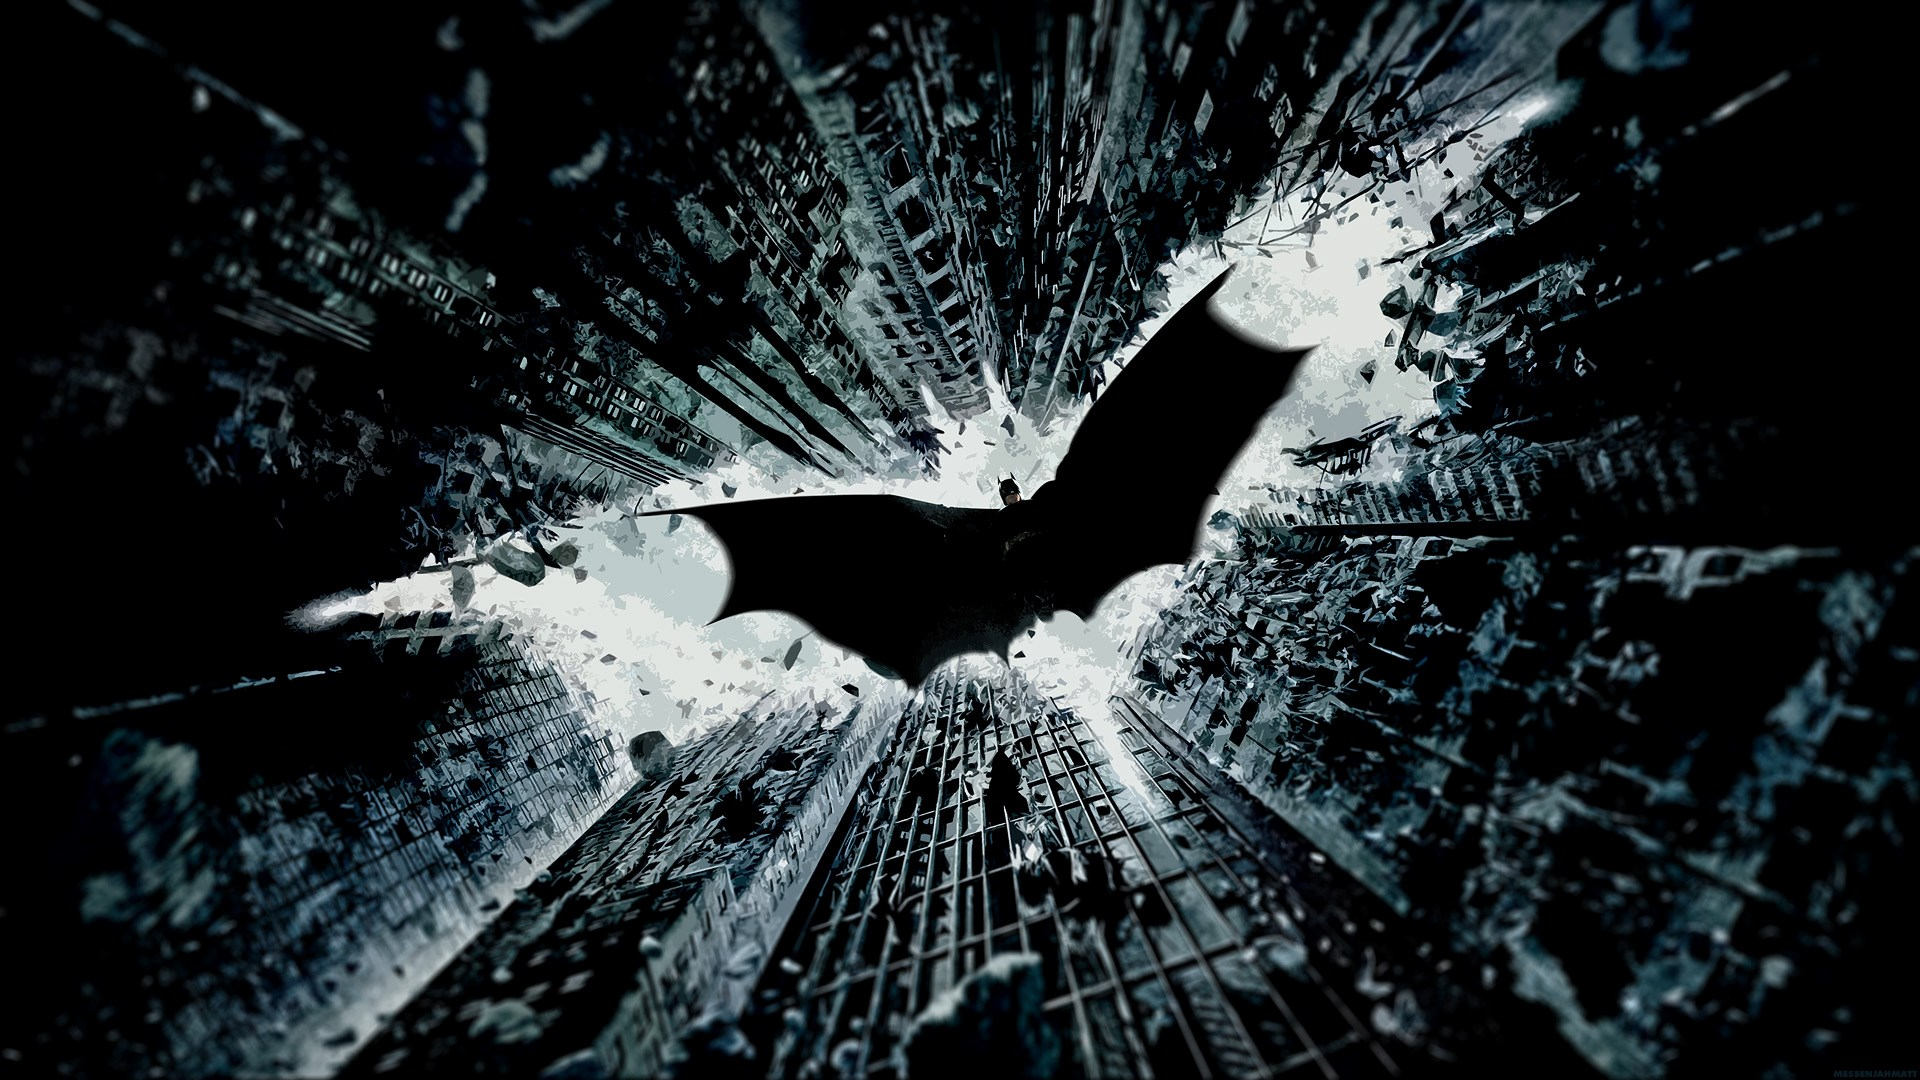 batman-backgrounds-hd-1920-x-1080-kB-wallpaper-wp3402901